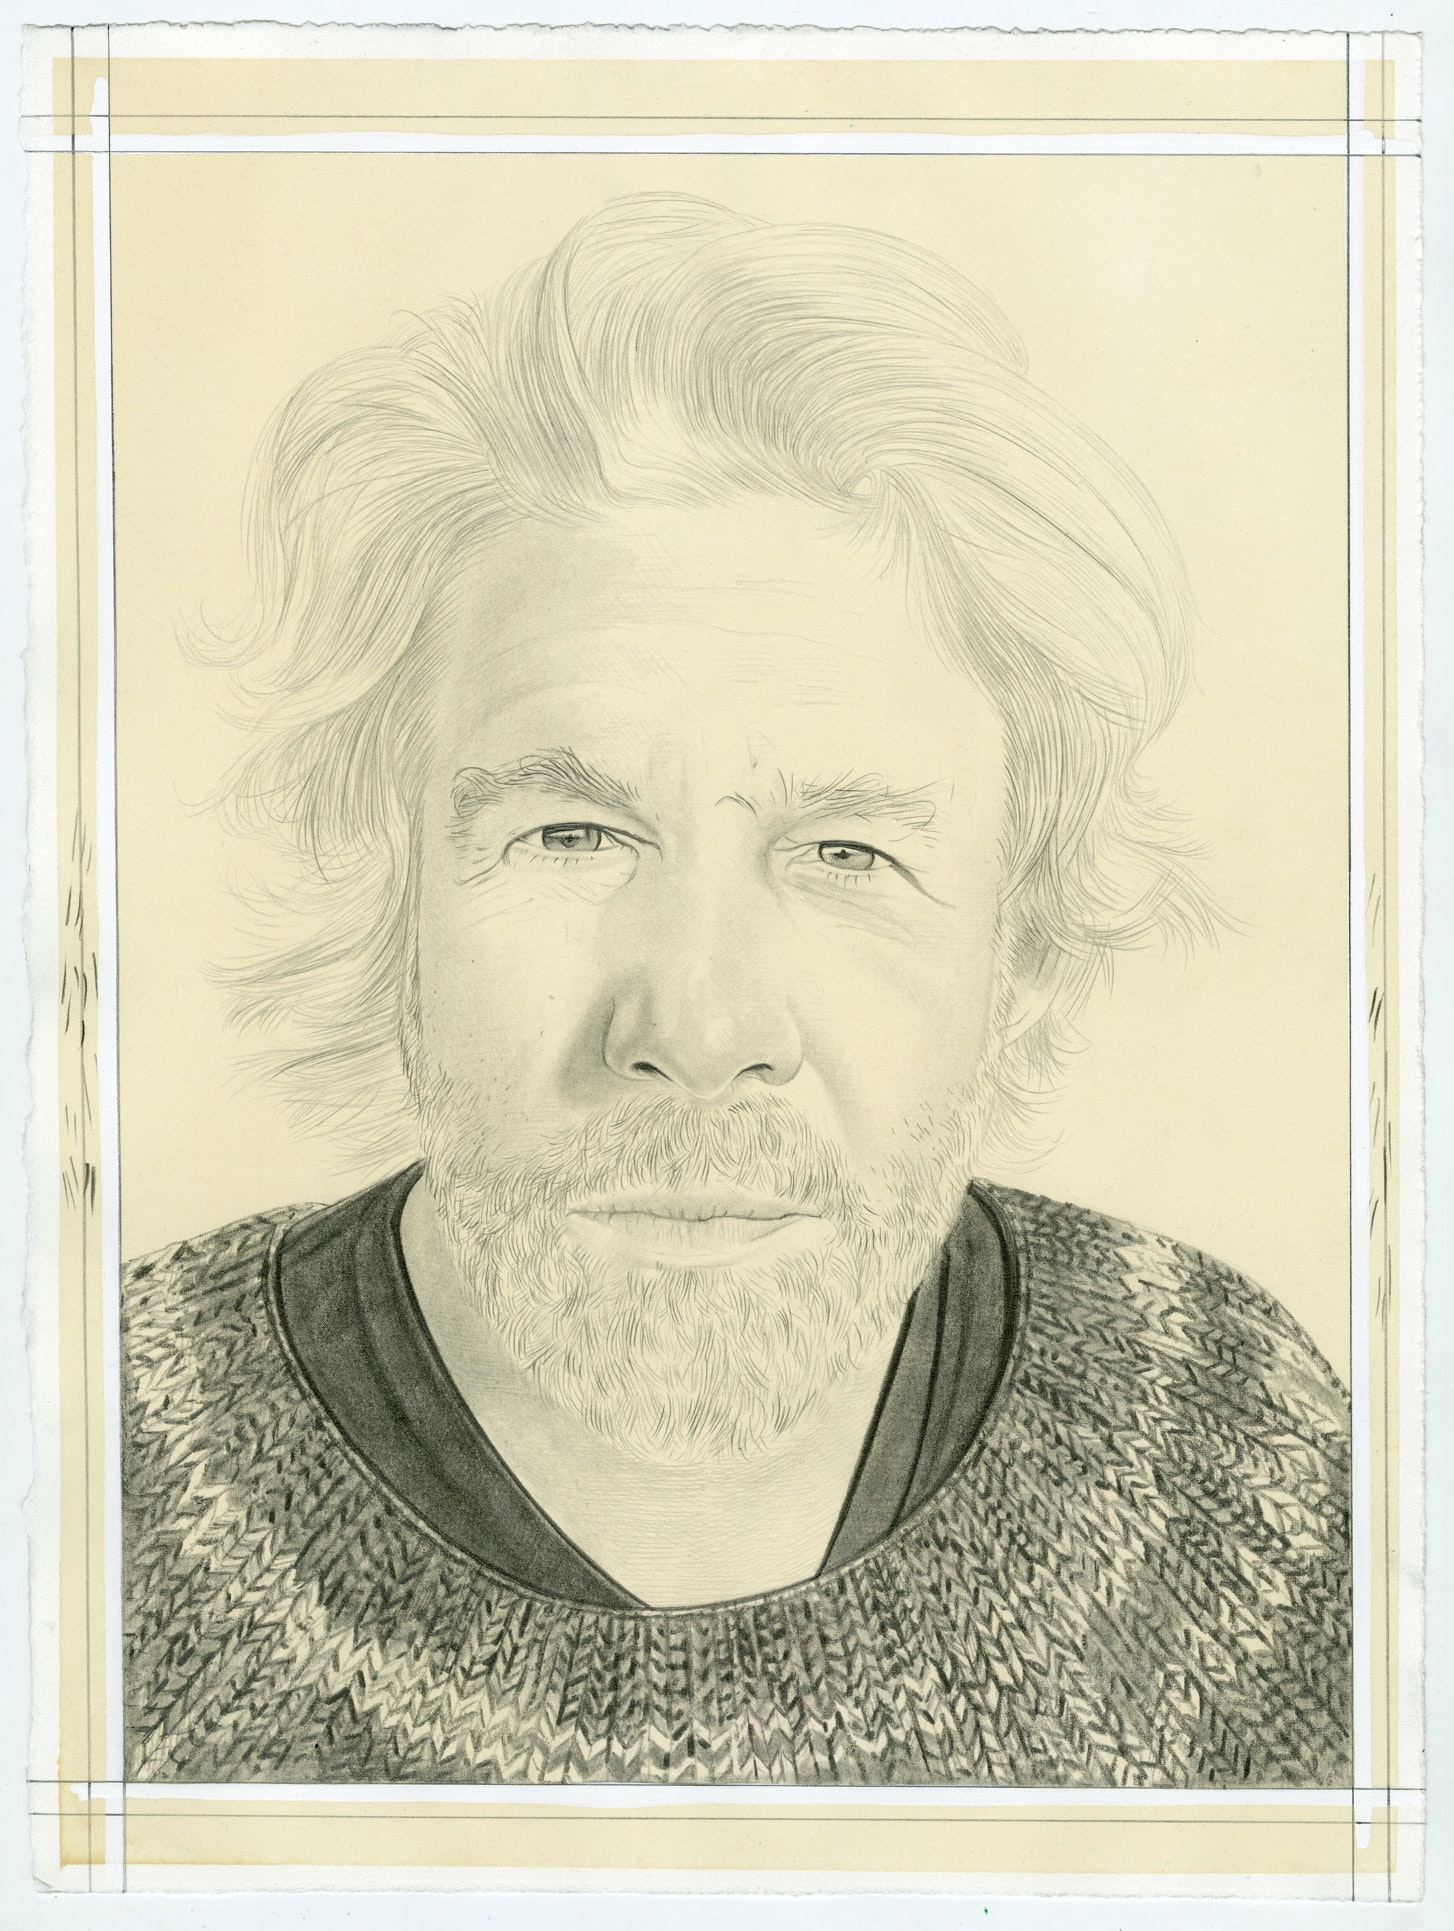 Portrait of John Zurier, pencil on paper by Phong Bui.